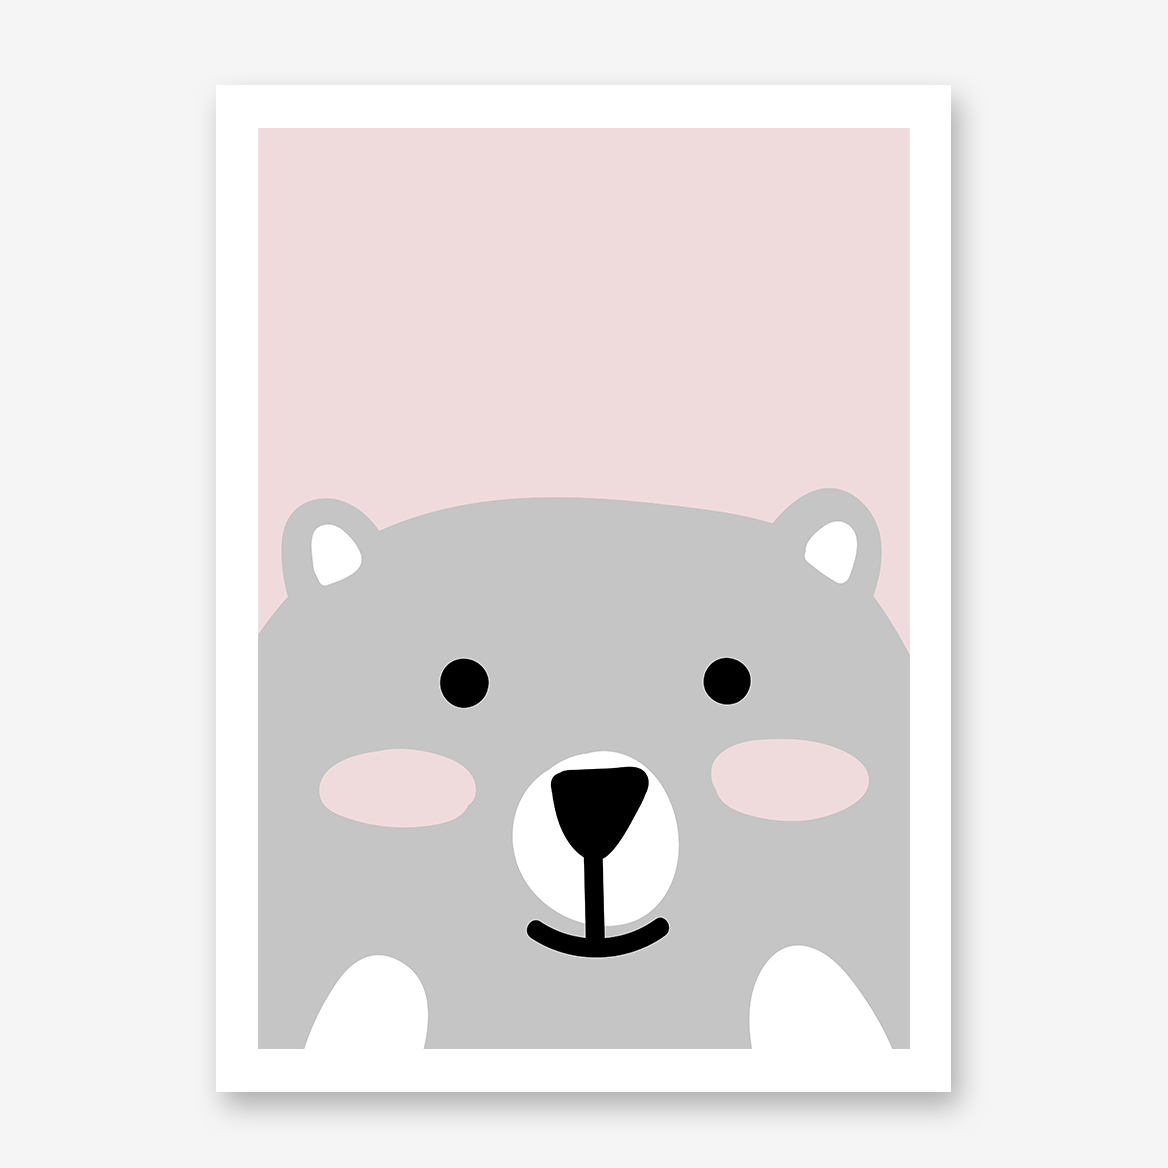 Nursery poster print with a smiley bear on pink background.